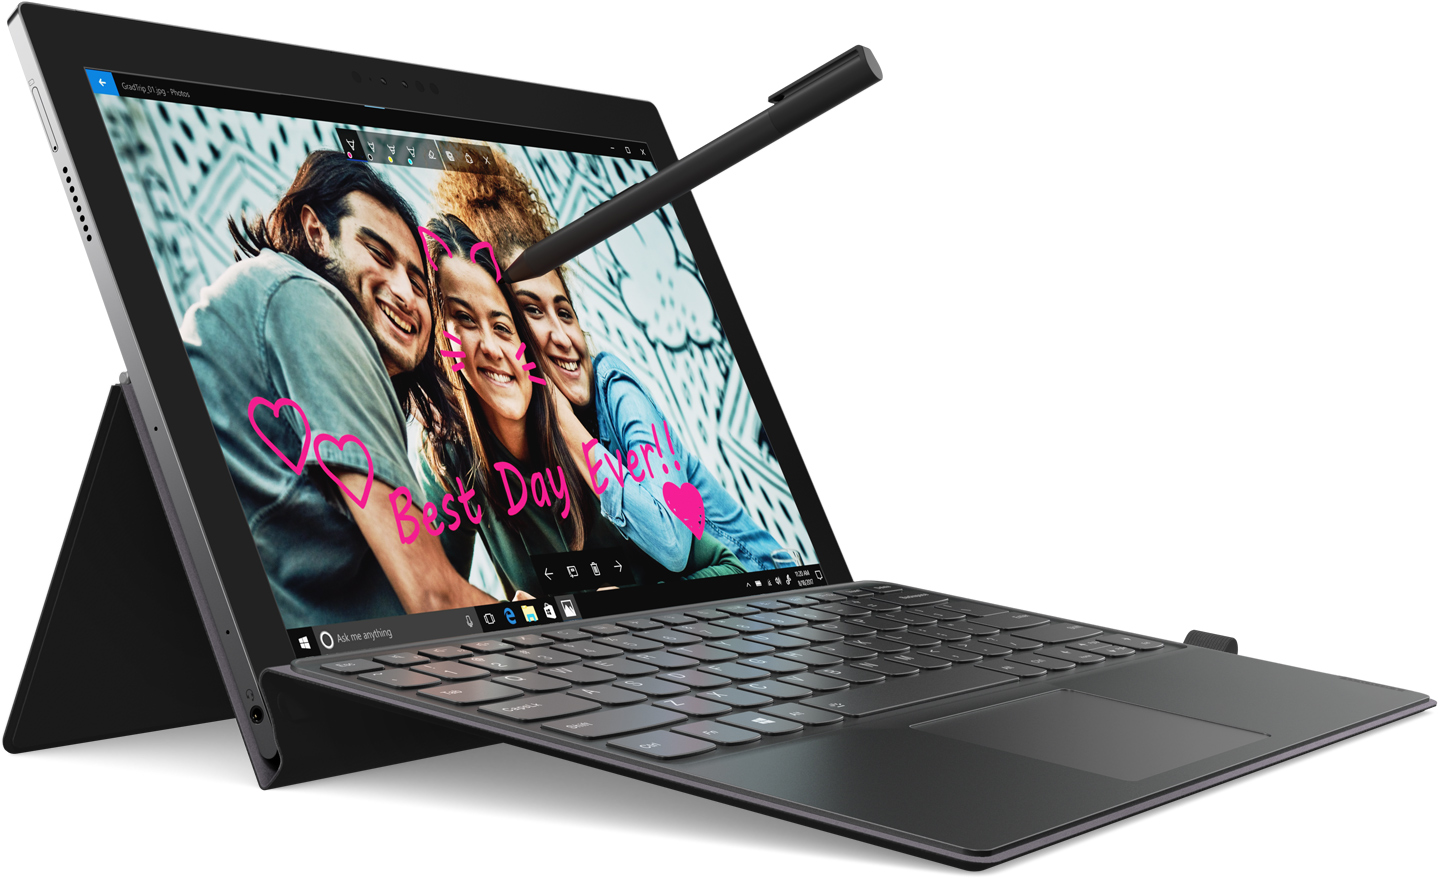 Two key features of the Miix 600 are connectivity \u2014 it supports 2x2 802.11ac Wi-Fi, Bluetooth 4.1 and Gigabit LTE modem, battery life being powered by Lenovo Unveils 630 2-in-1: Windows 10 S, Snapdragon 835